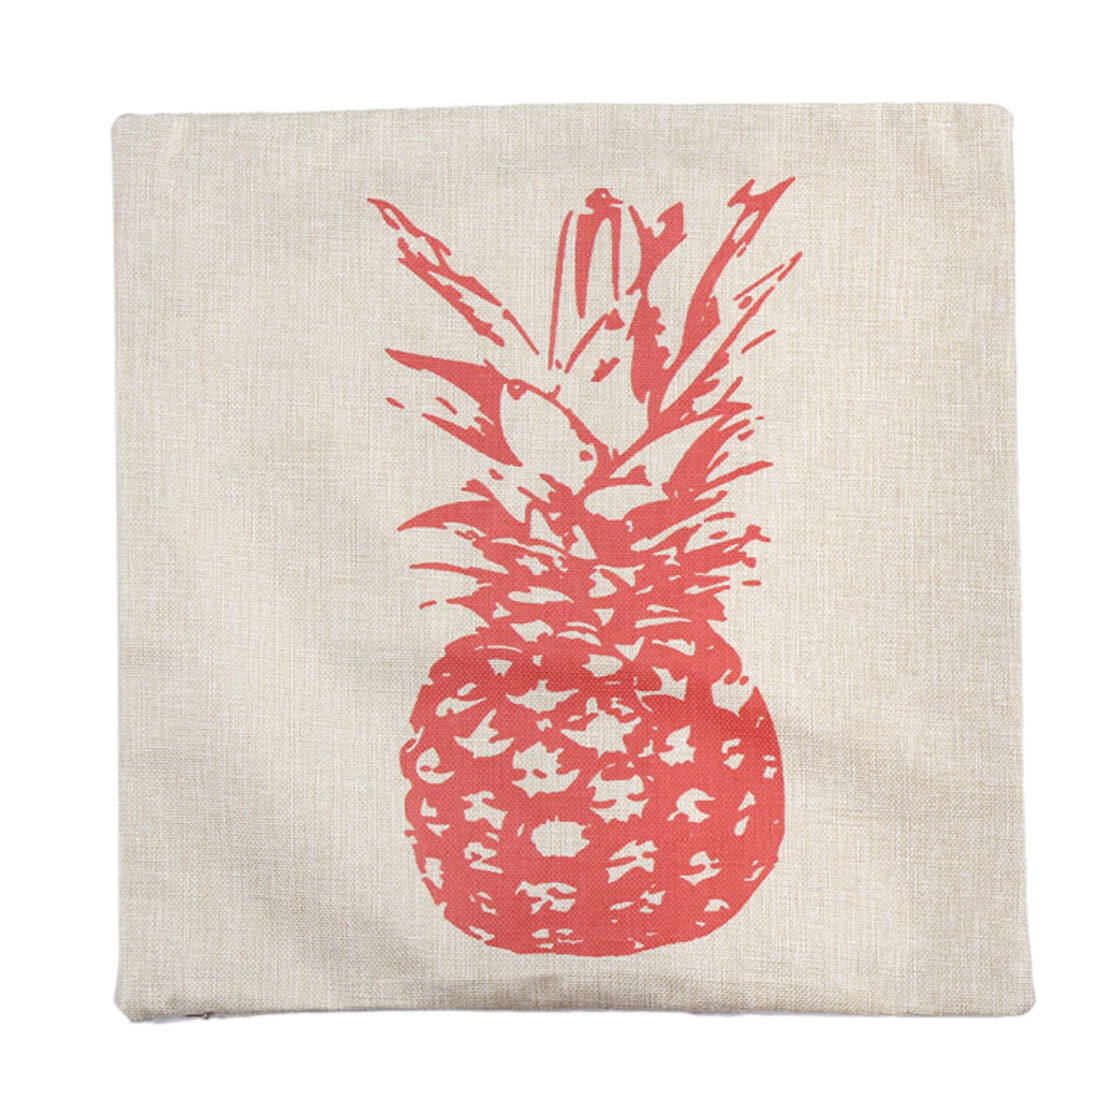 Piccocasa Home Sofa Linen Pink Pineapple Pattern Cushion Cover Pillow Case